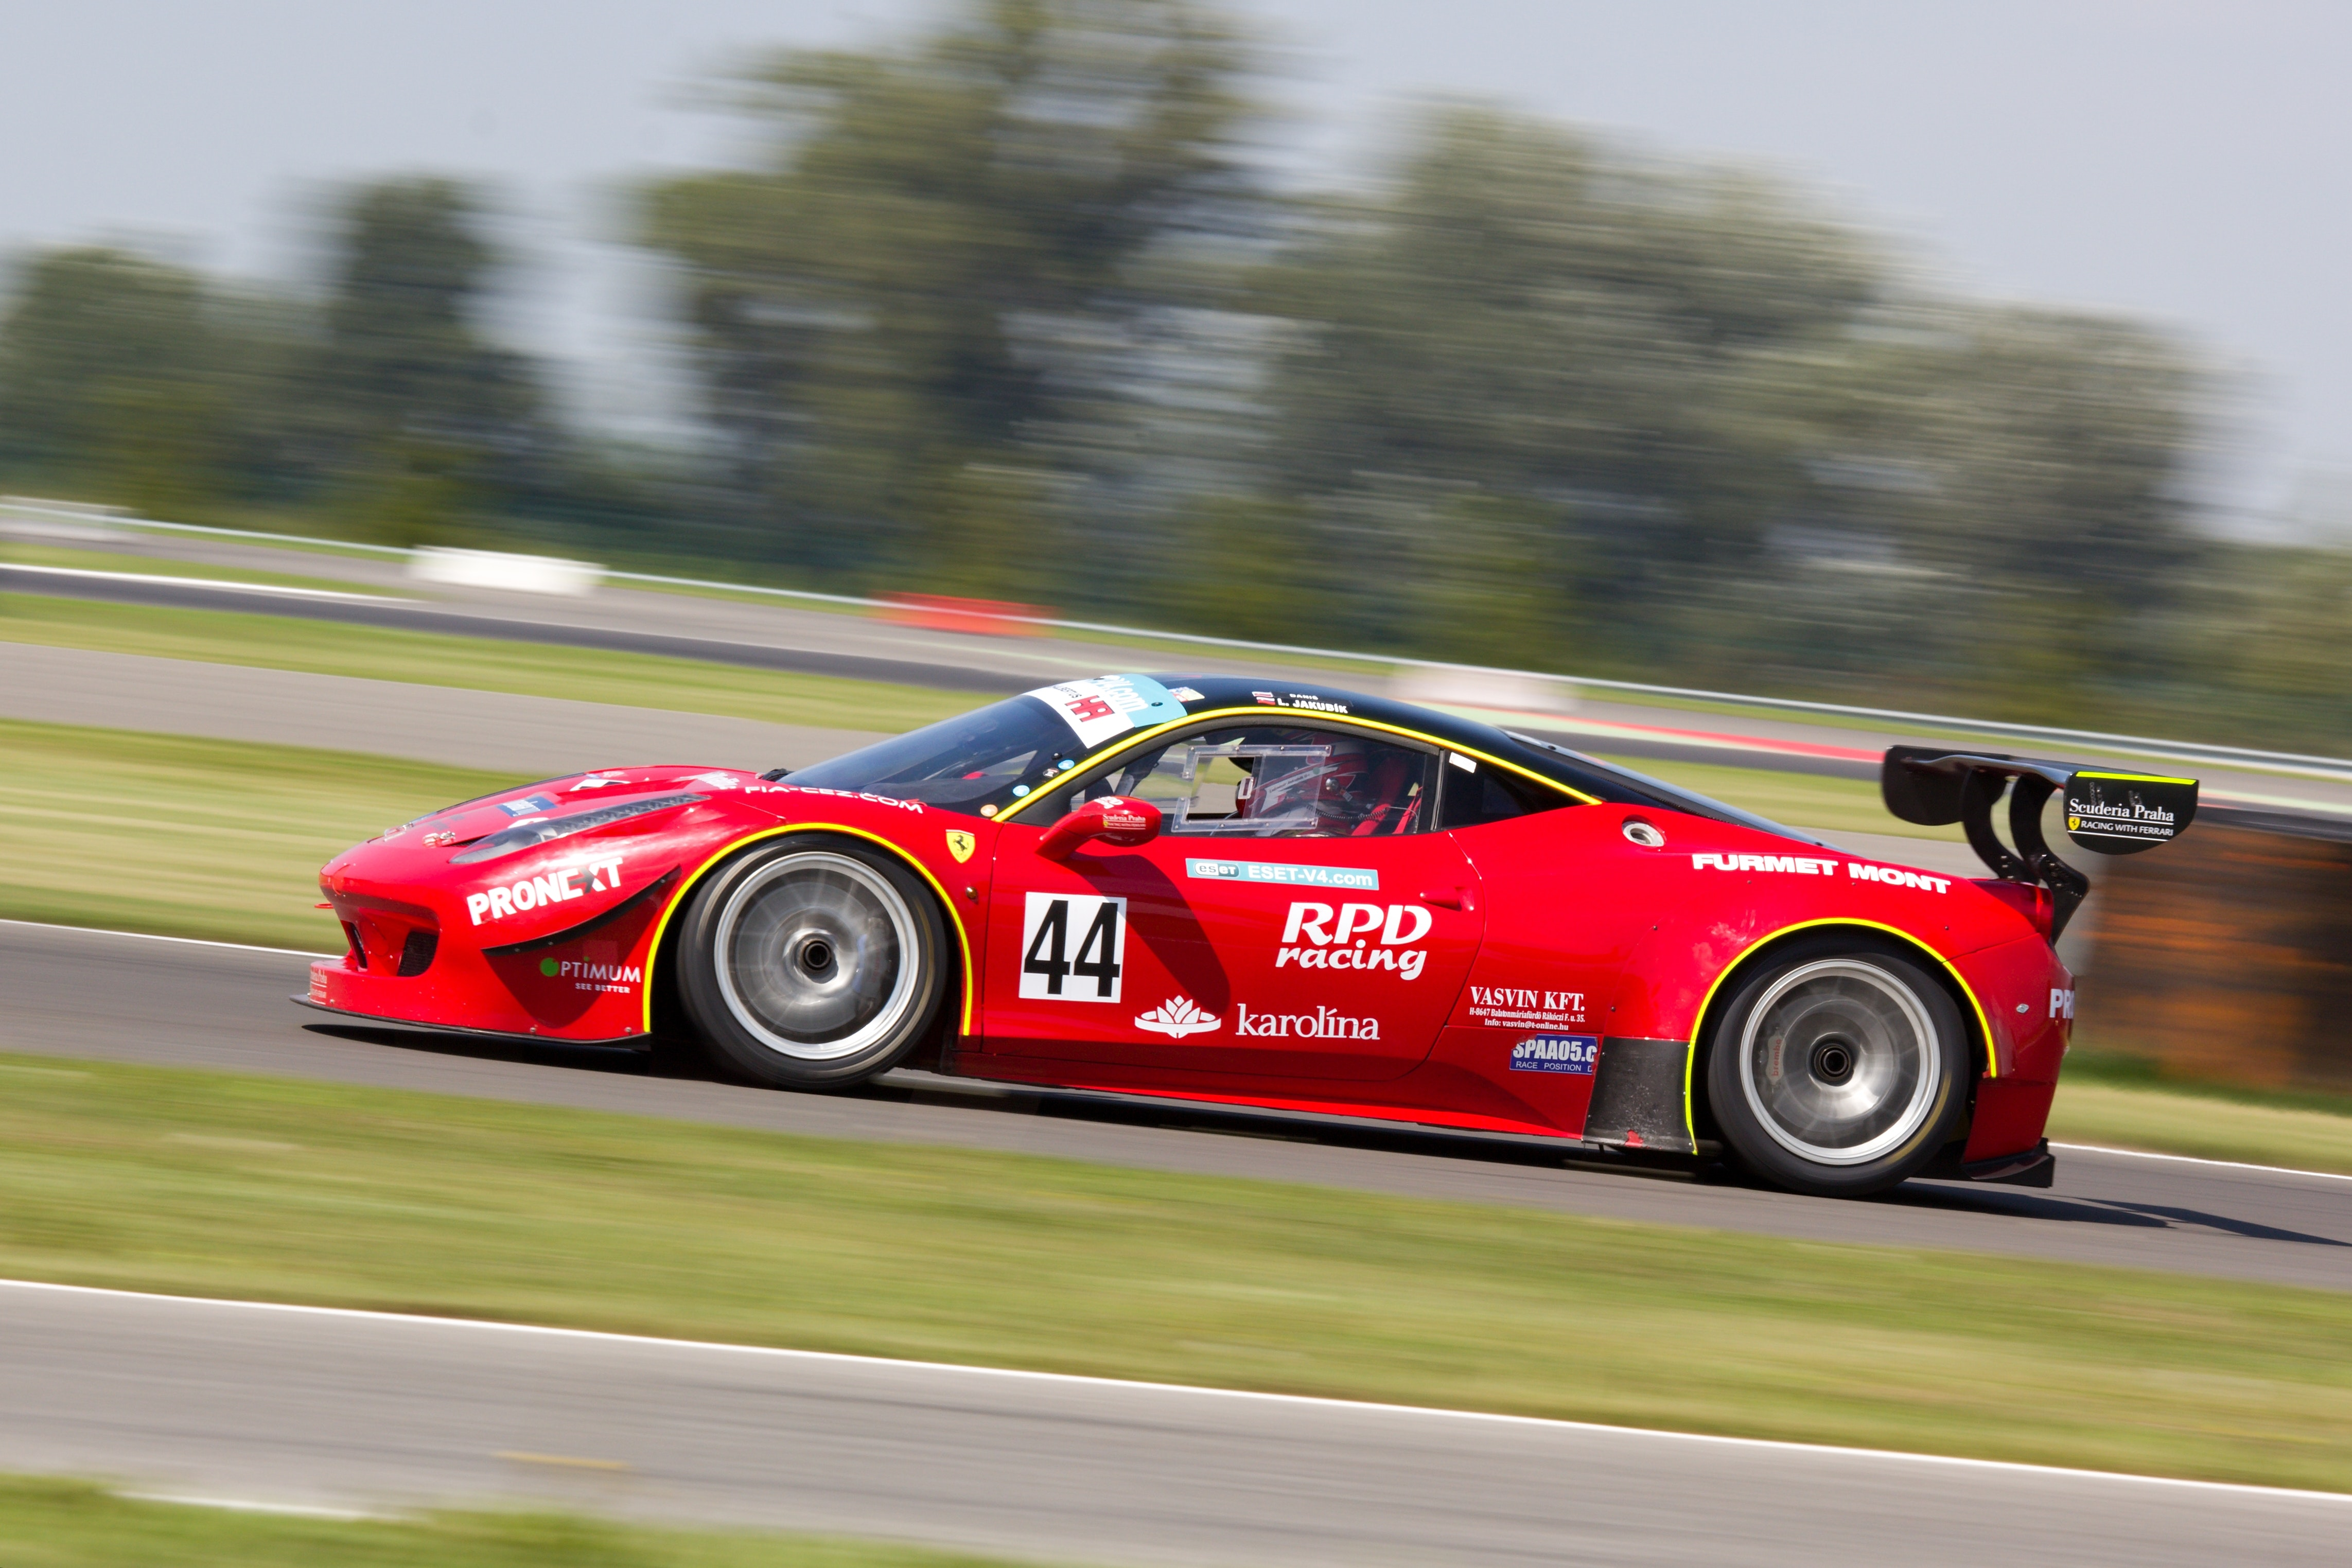 Free photo: Red Racing Car on Race Track during Daytime - Sport ...